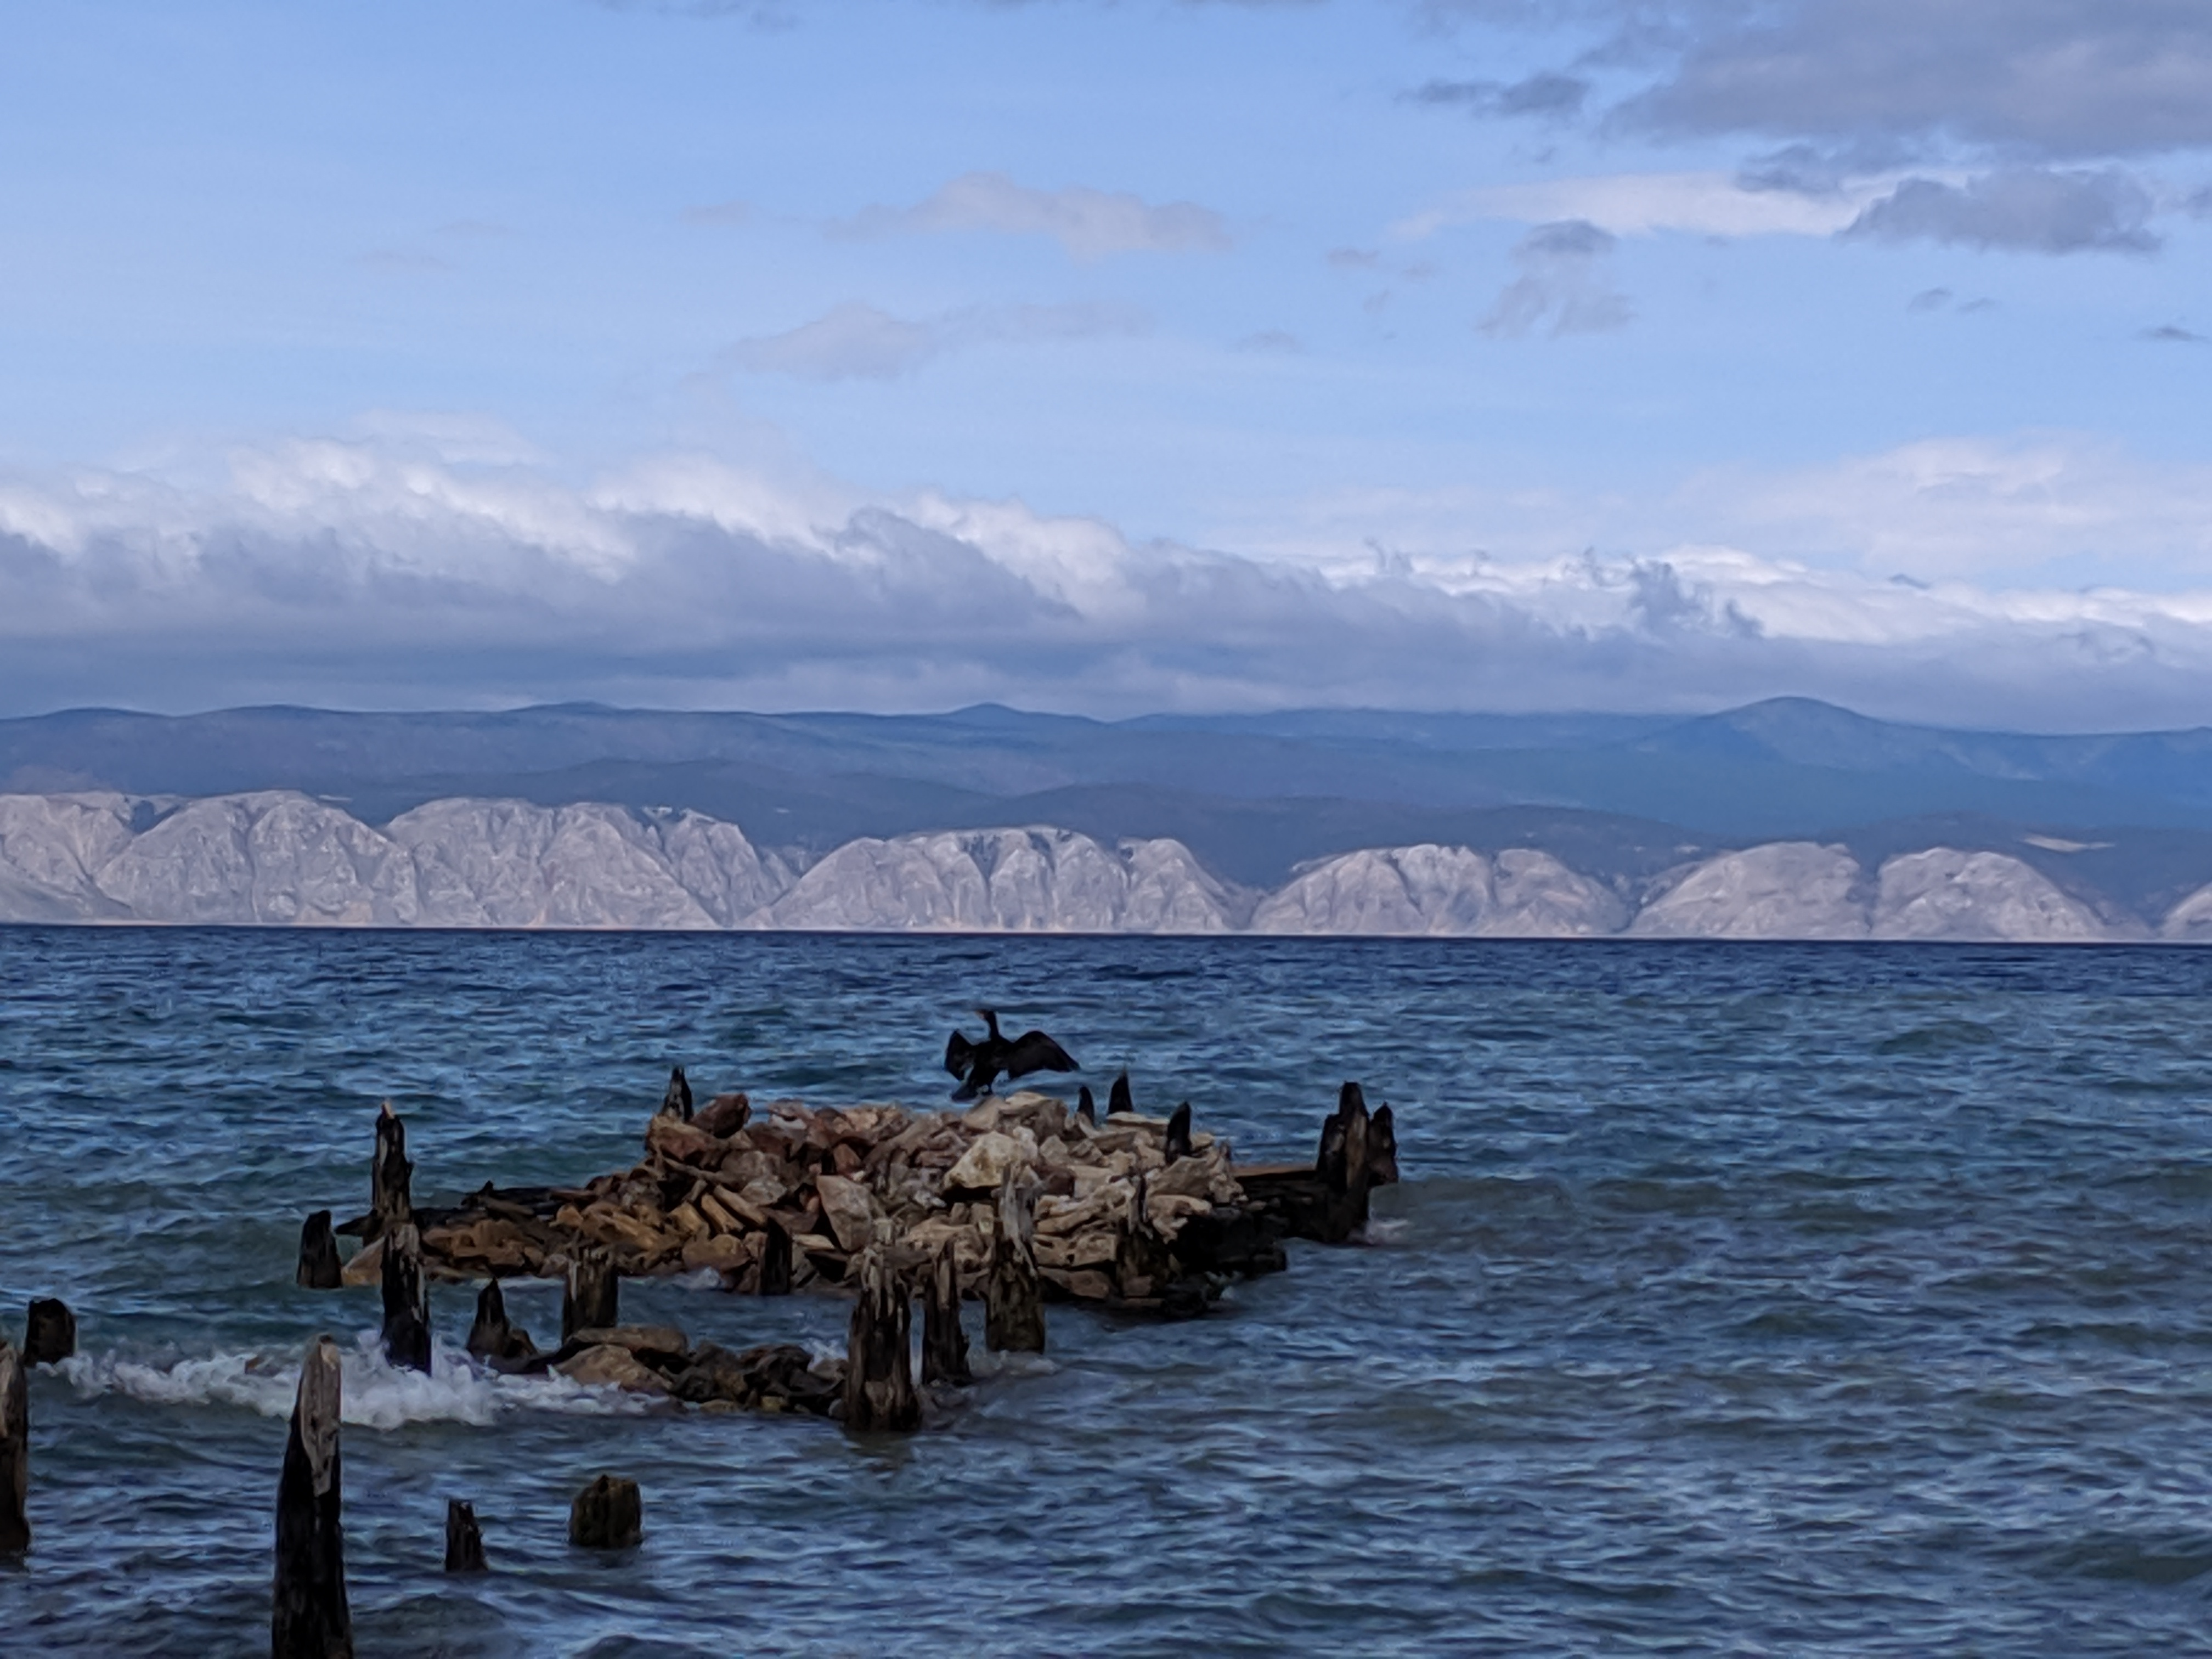 Views of Lake Baikal from Olkhon Island in Russia